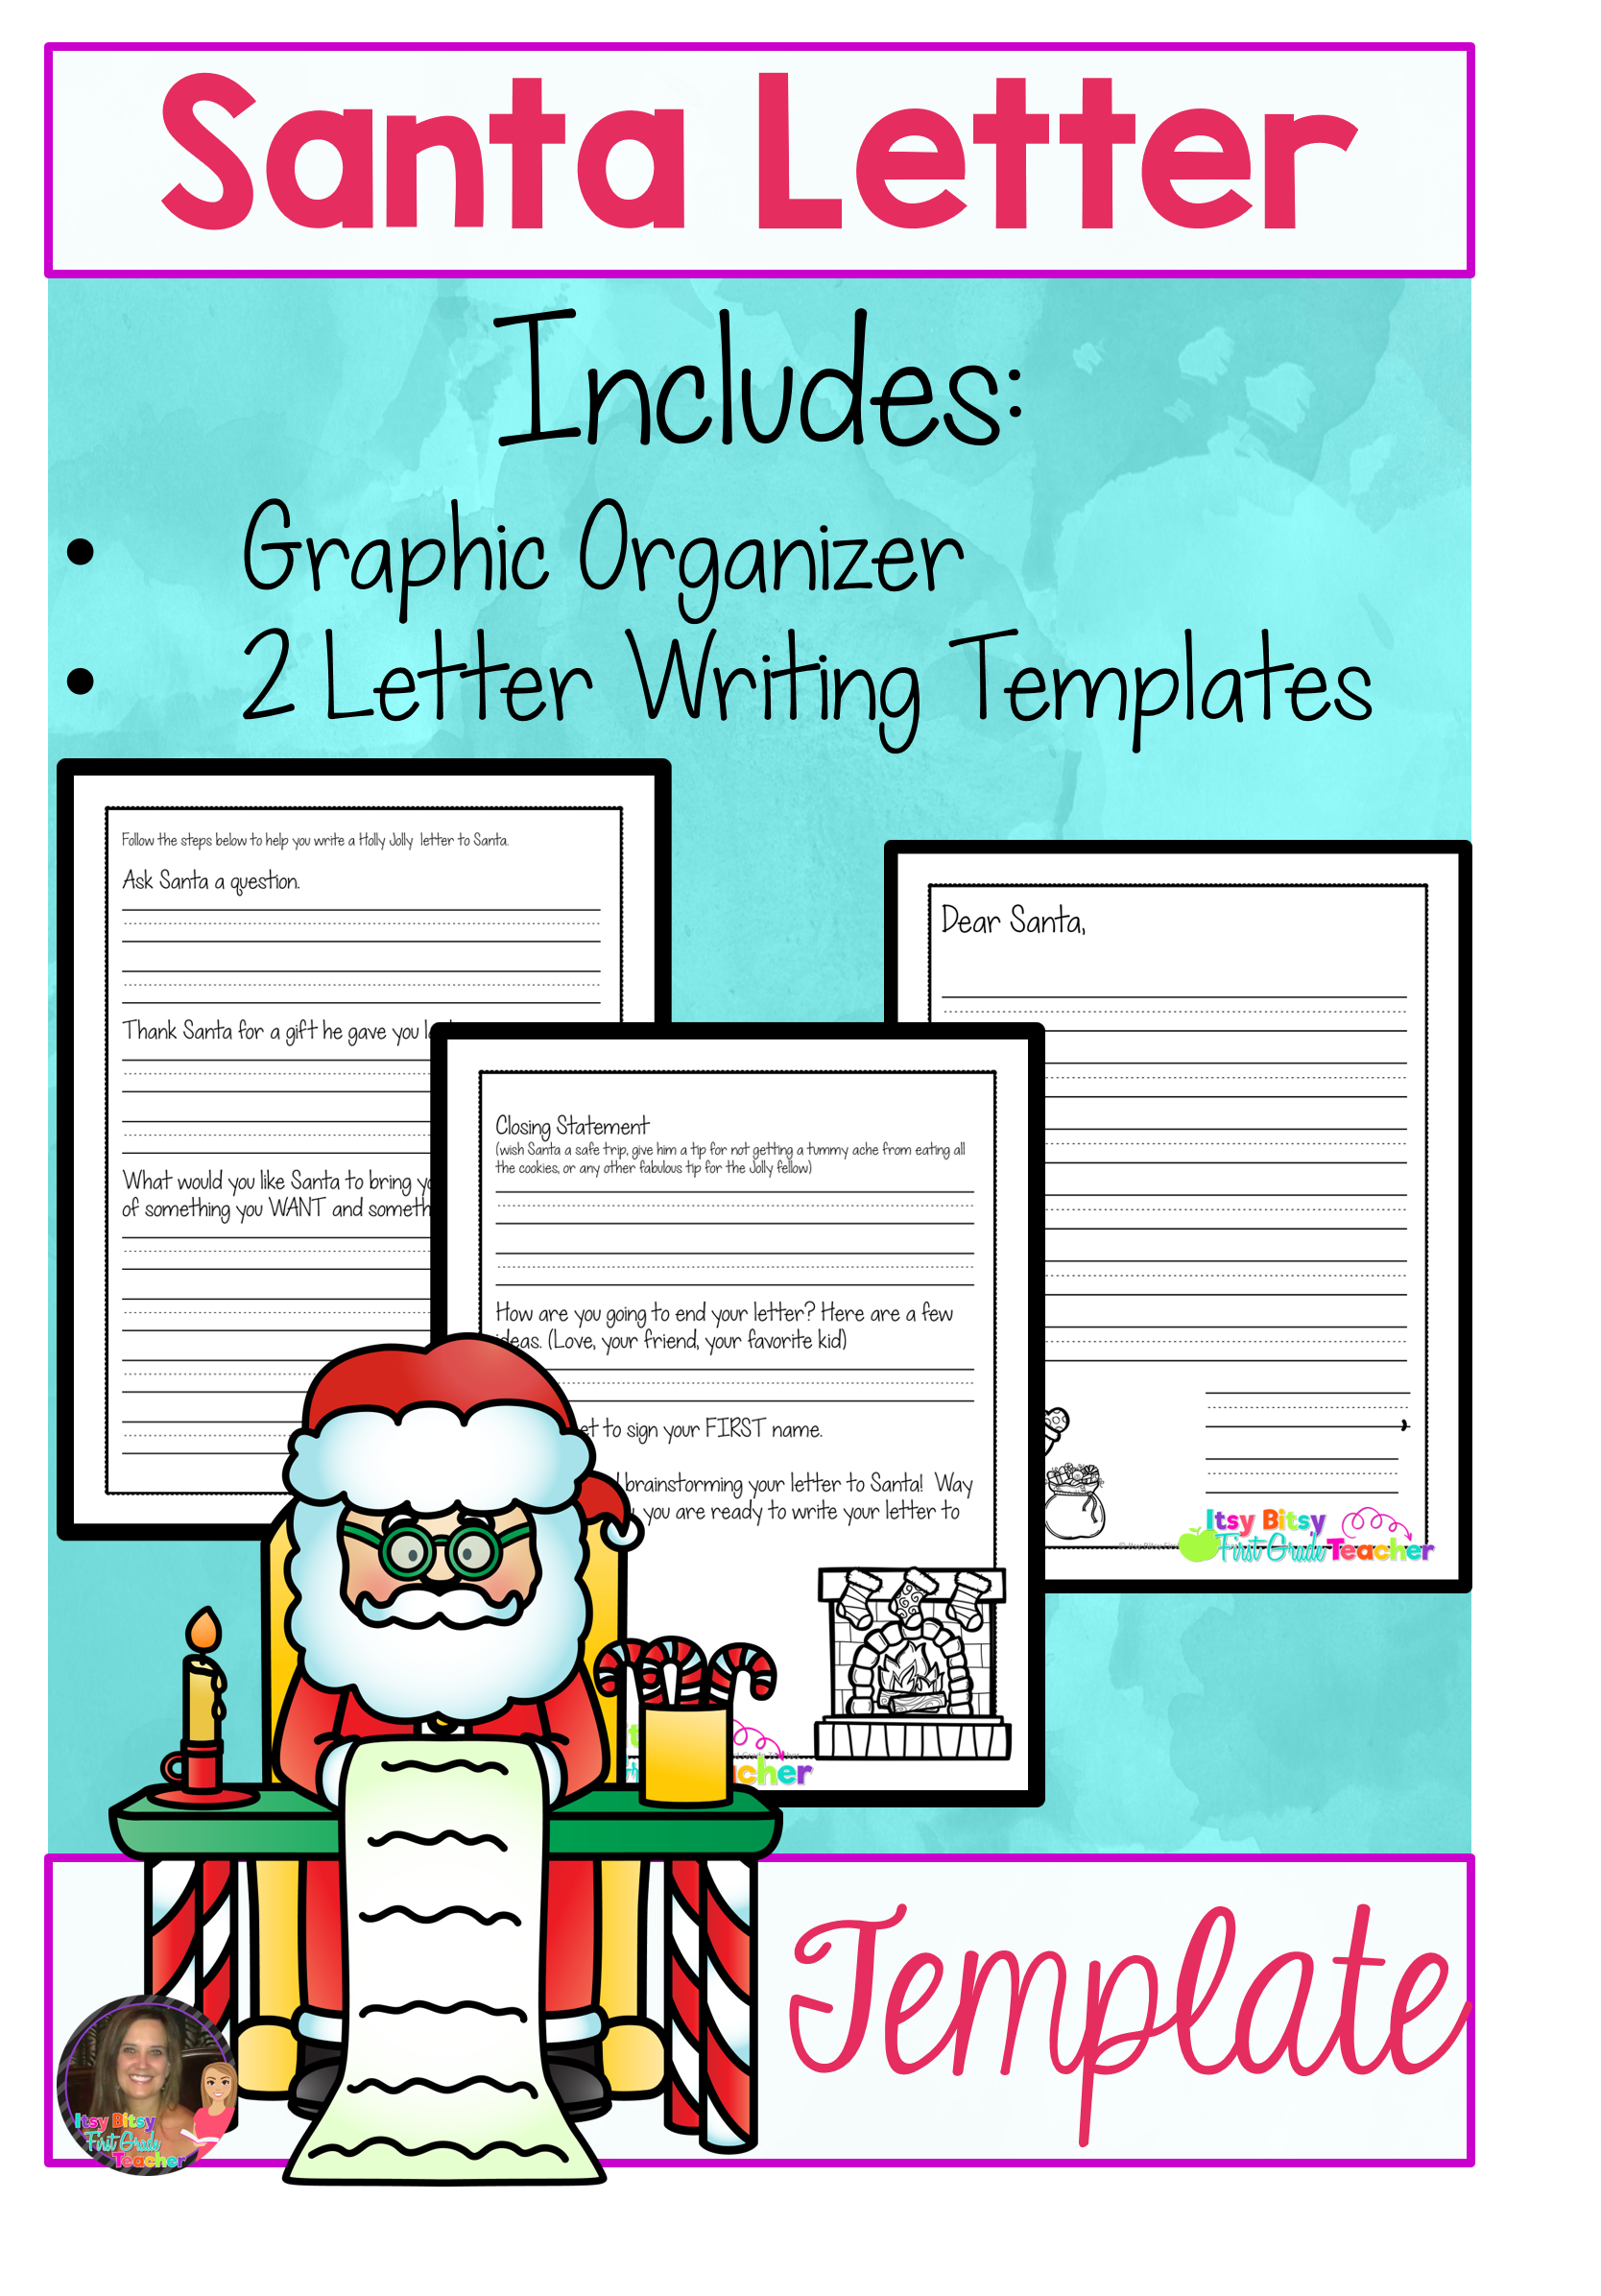 Dear Santa  Writing Santa Letters Can Be Overwhelming For